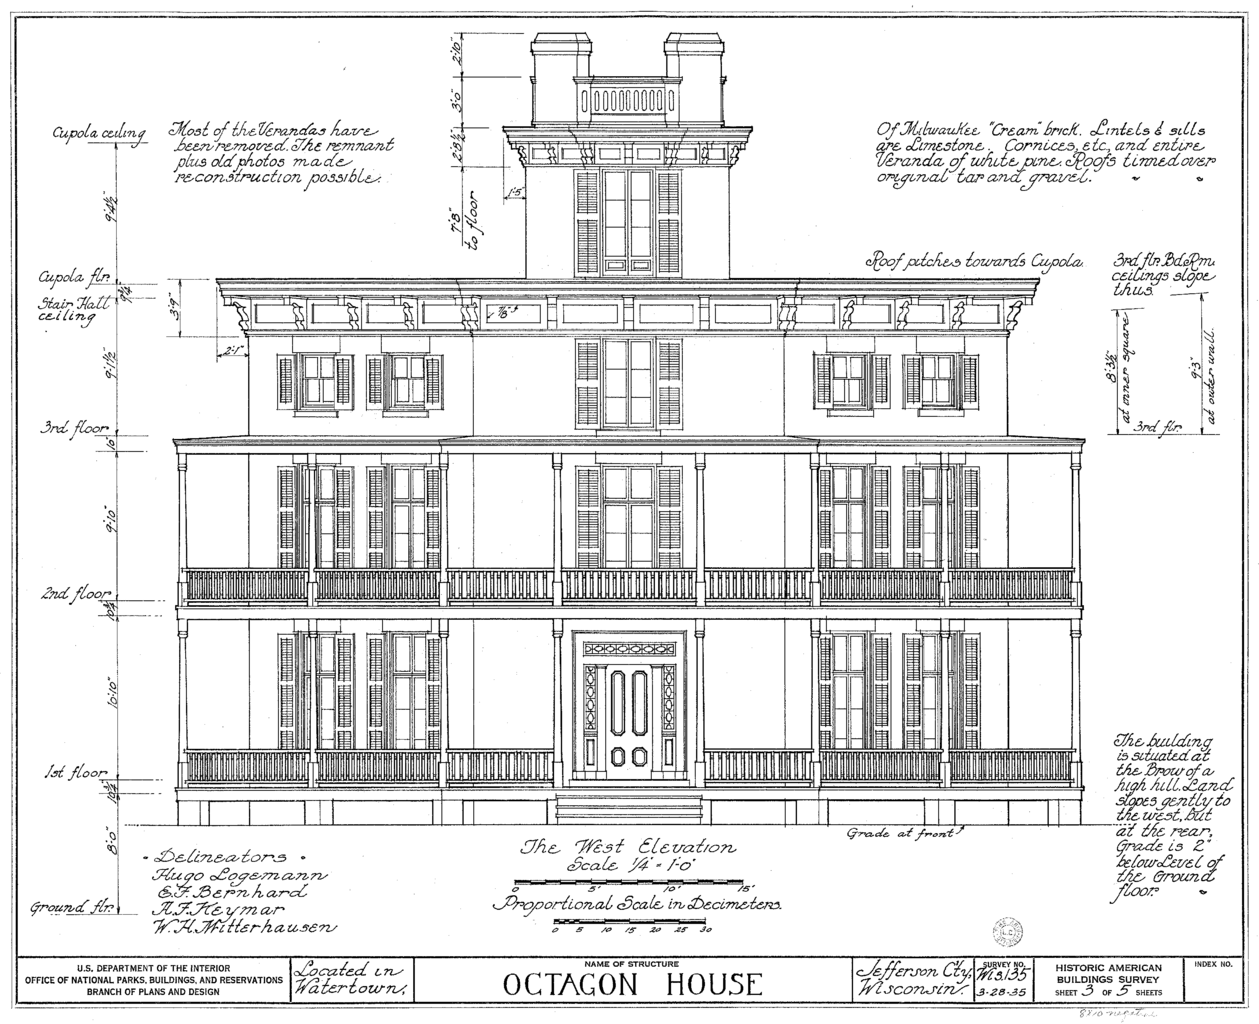 Building Front Elevation Drawings : File watertown octagon house elevation wikimedia commons